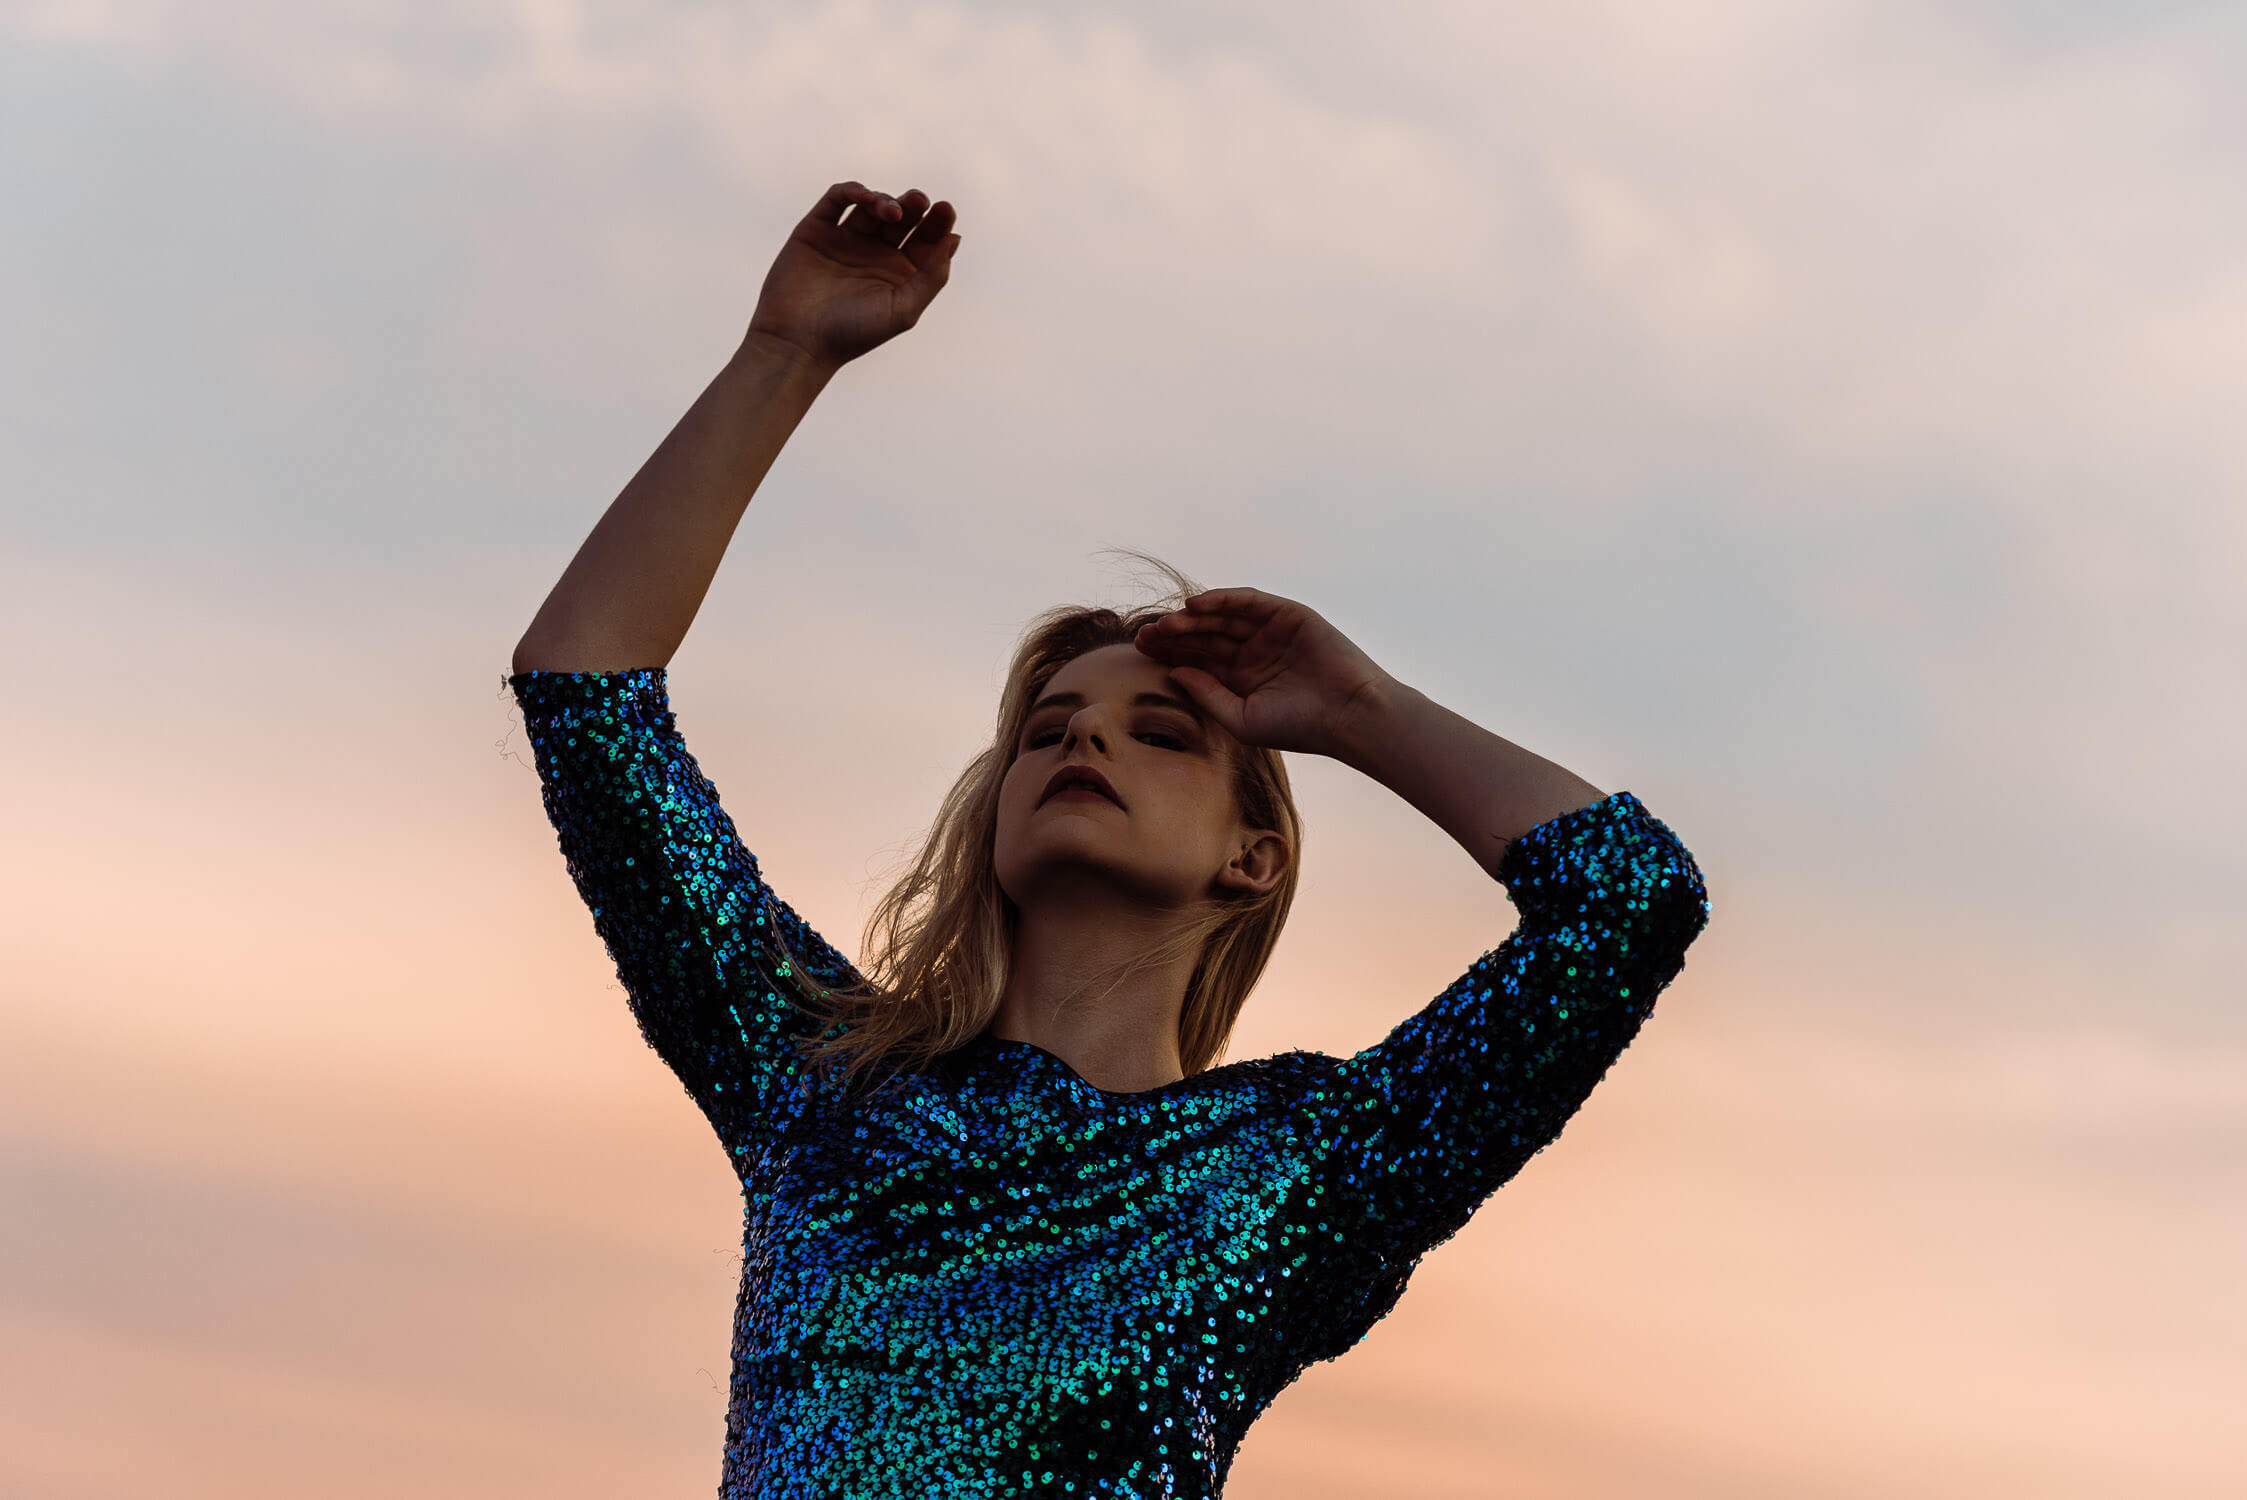 Female model wearing blue and green sequin dress at sunset